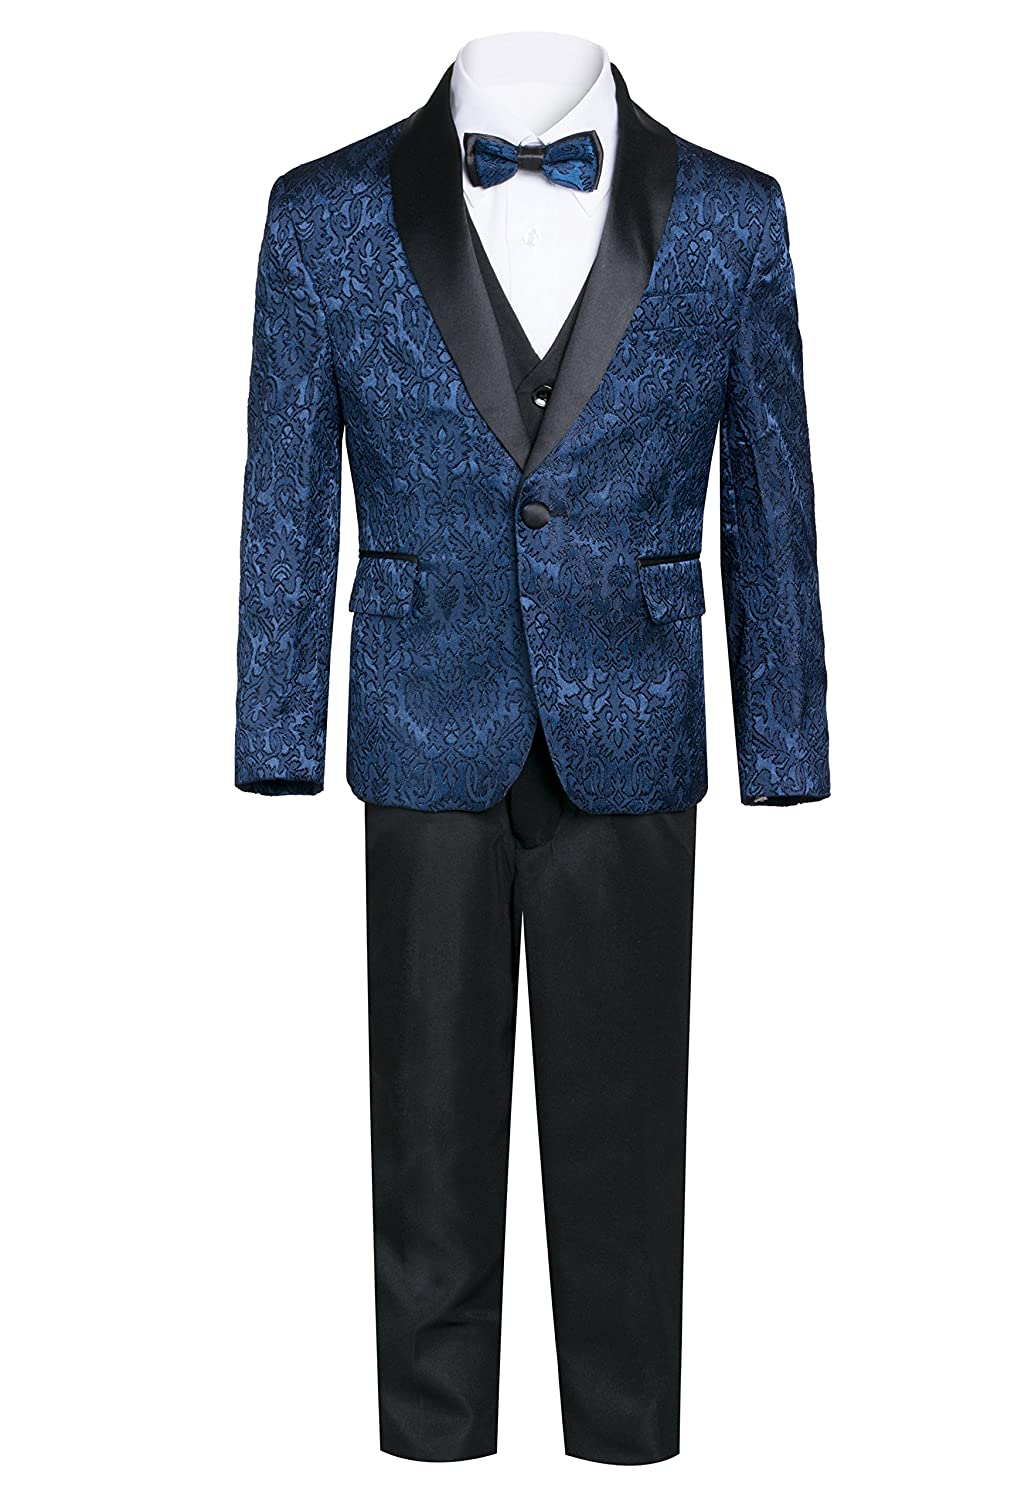 King Formal Wear Boys Premium Paisley Patterned Shawl Lapel Tuxedos - Many Colors